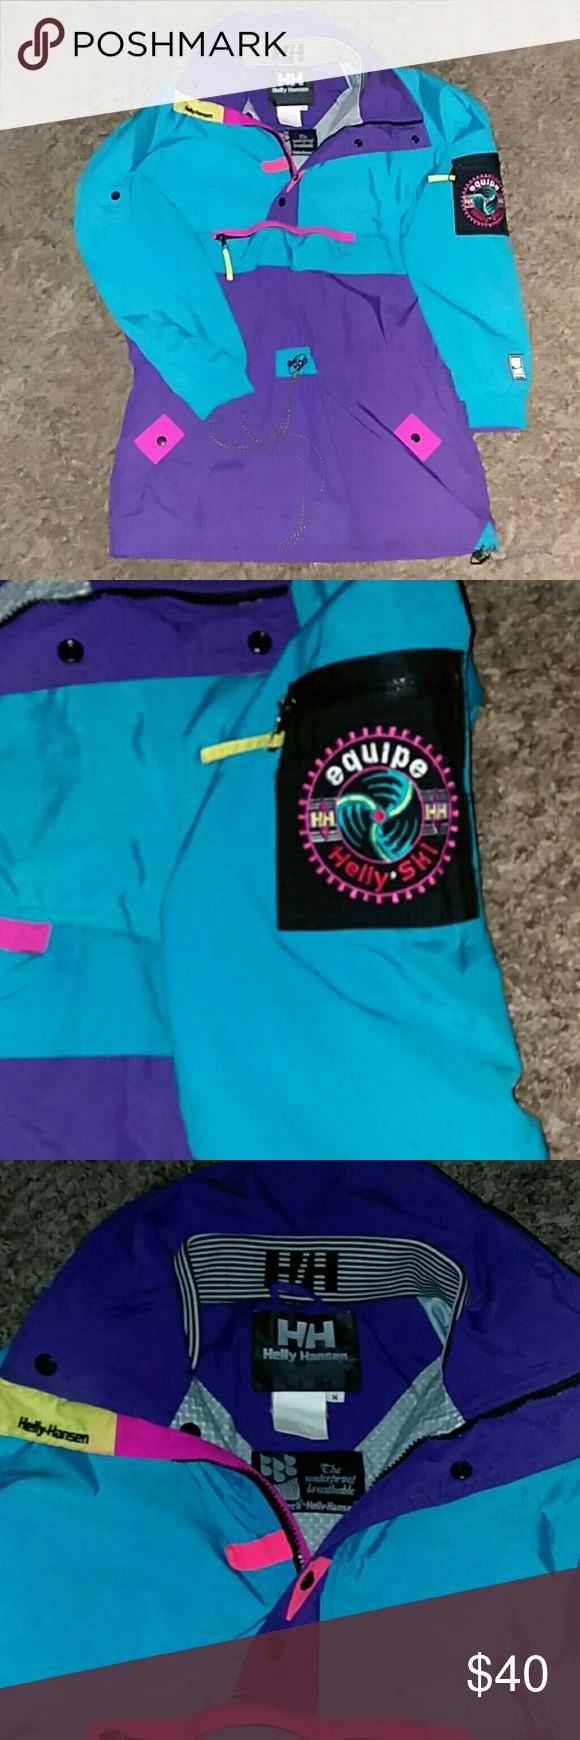 Helly Hansen vintage ski jacket Excellent condition vintage ski jacket!!! Has numerous pockets for storage! Beautiful vibrant colors, waterproof, and breathable pockets. Size medium Helly Hansen Jackets & Coats